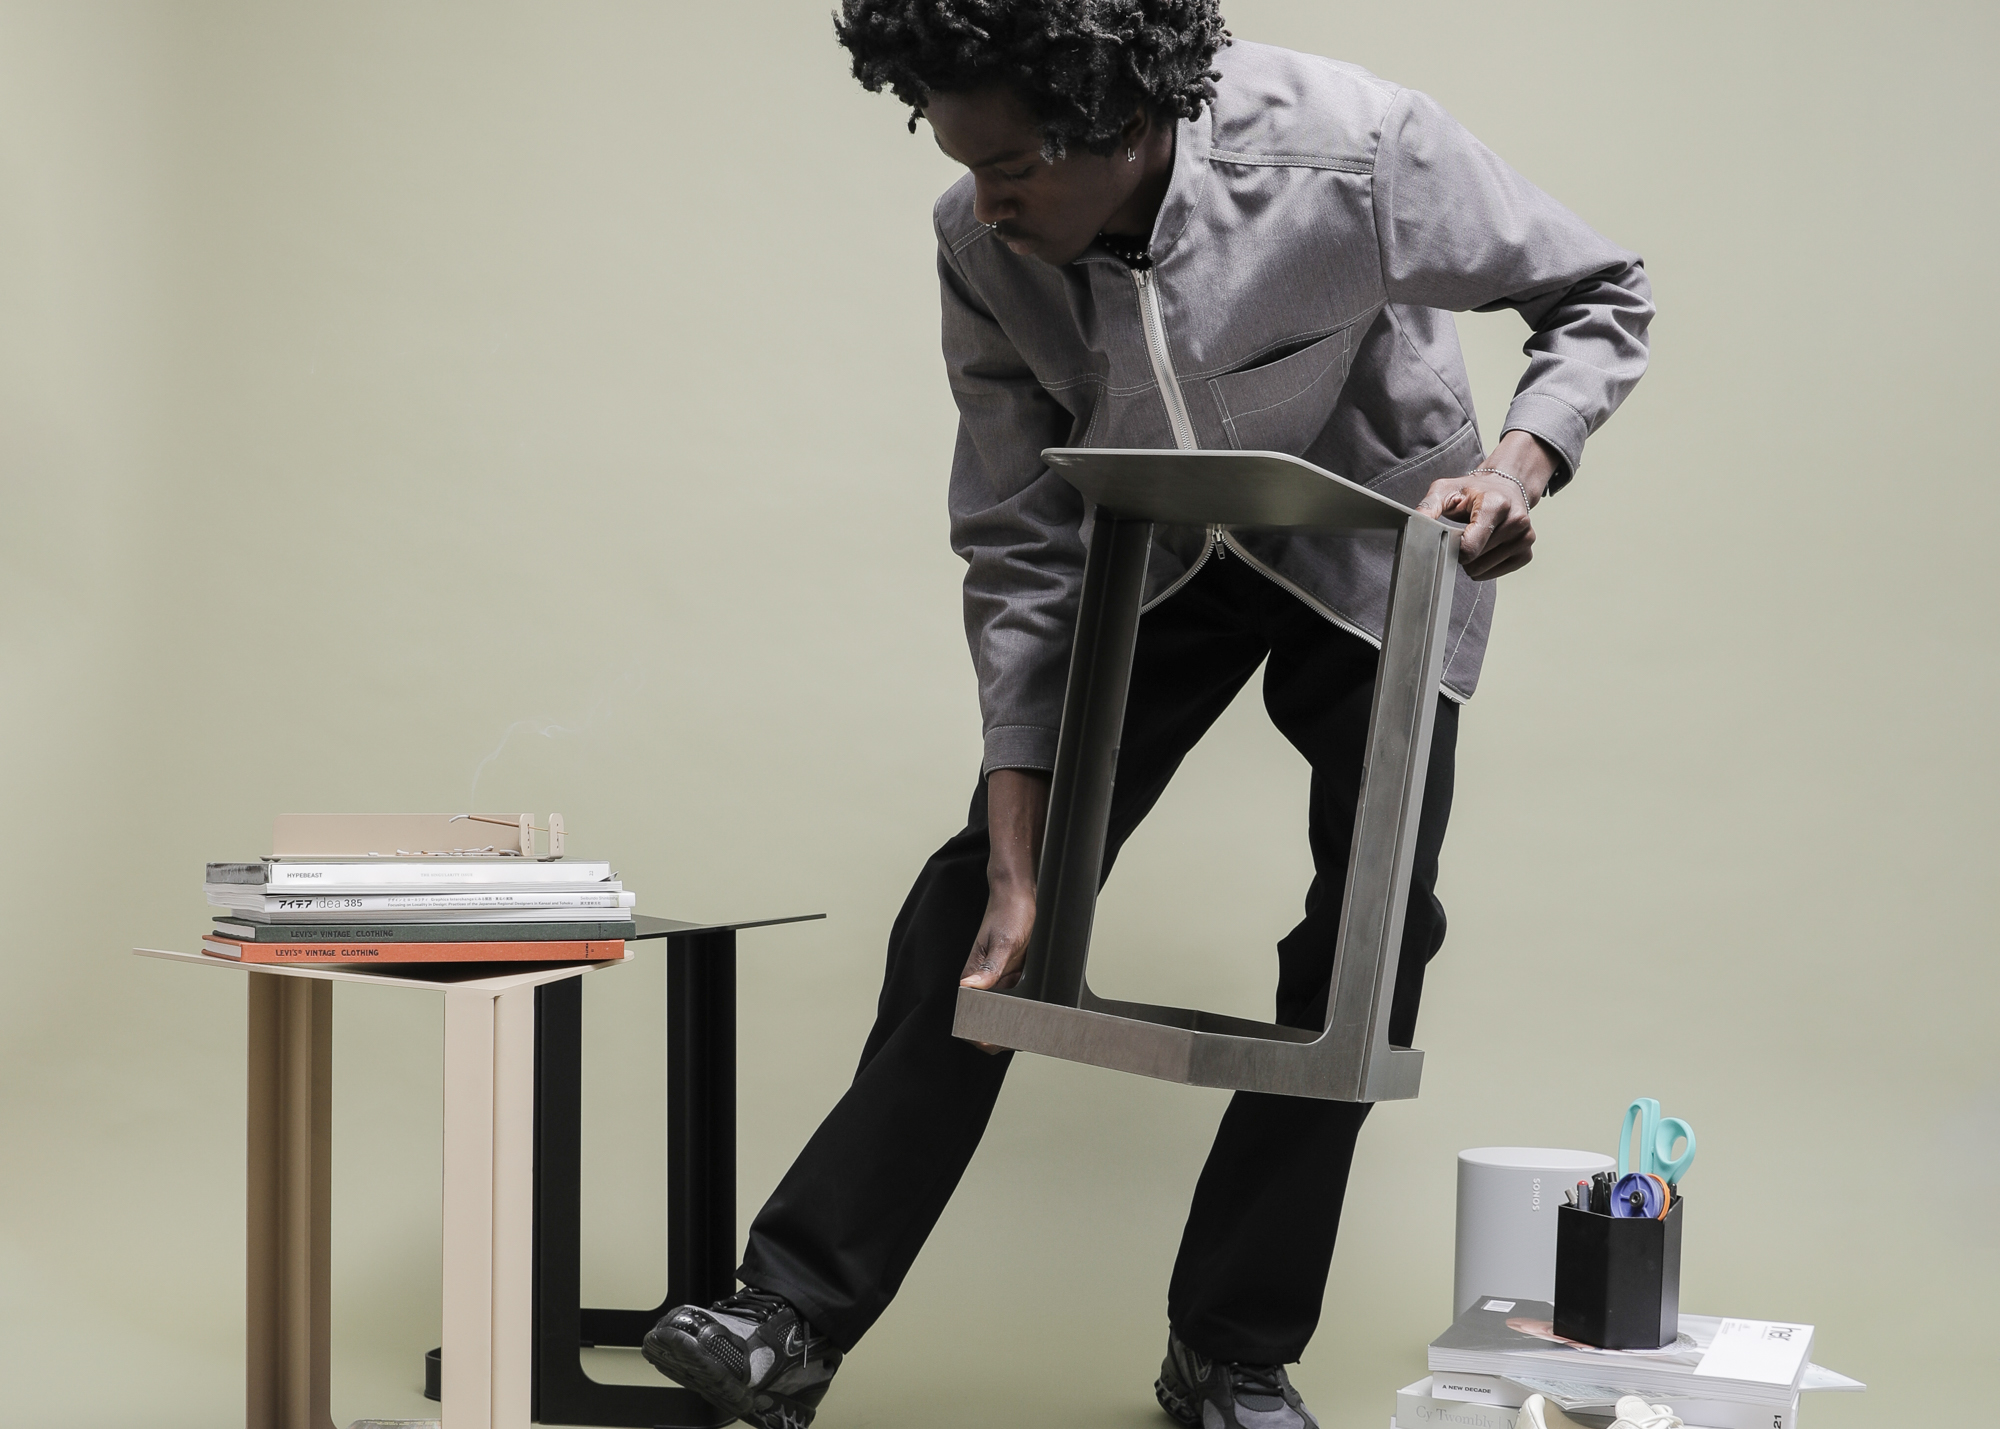 A man lifts up the new sheet metal stool from Oakland design company BASE